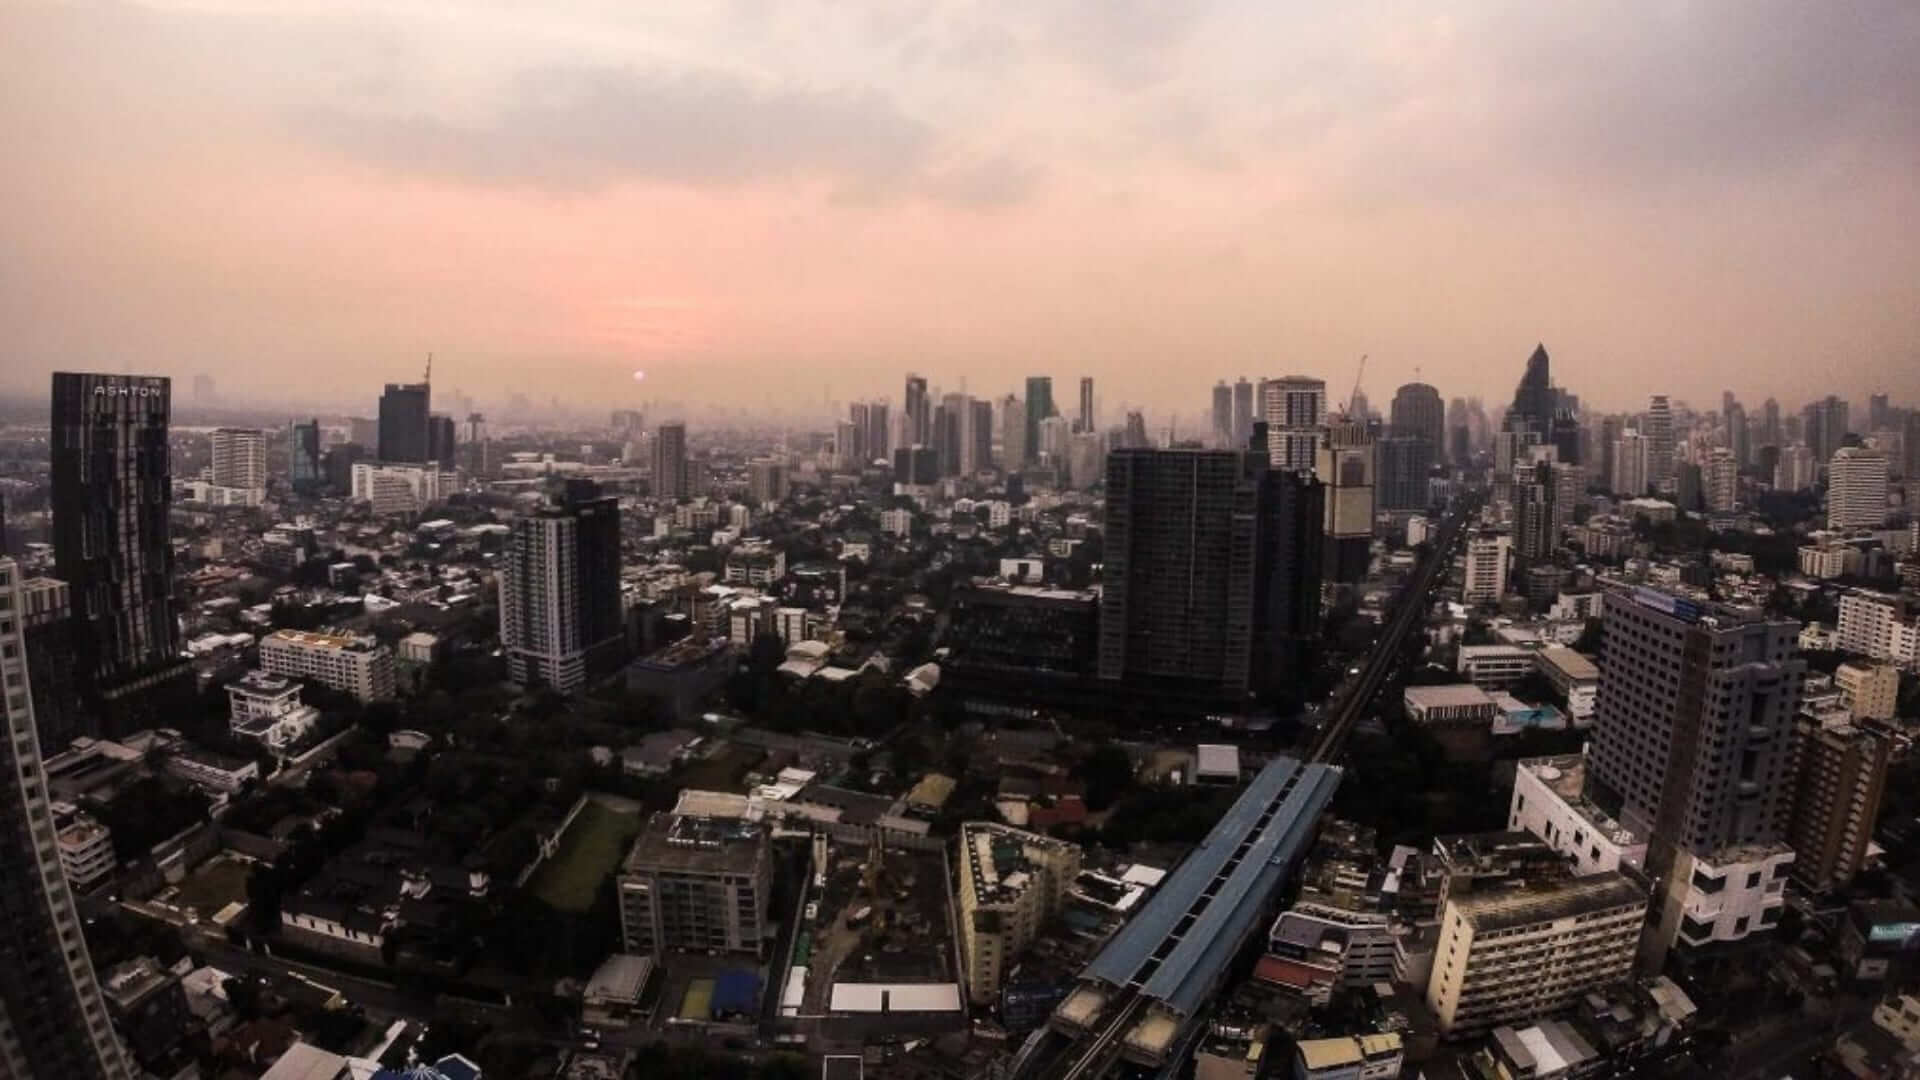 Aerial view of buildings in Bangkok during a cloudy day in Thailand.